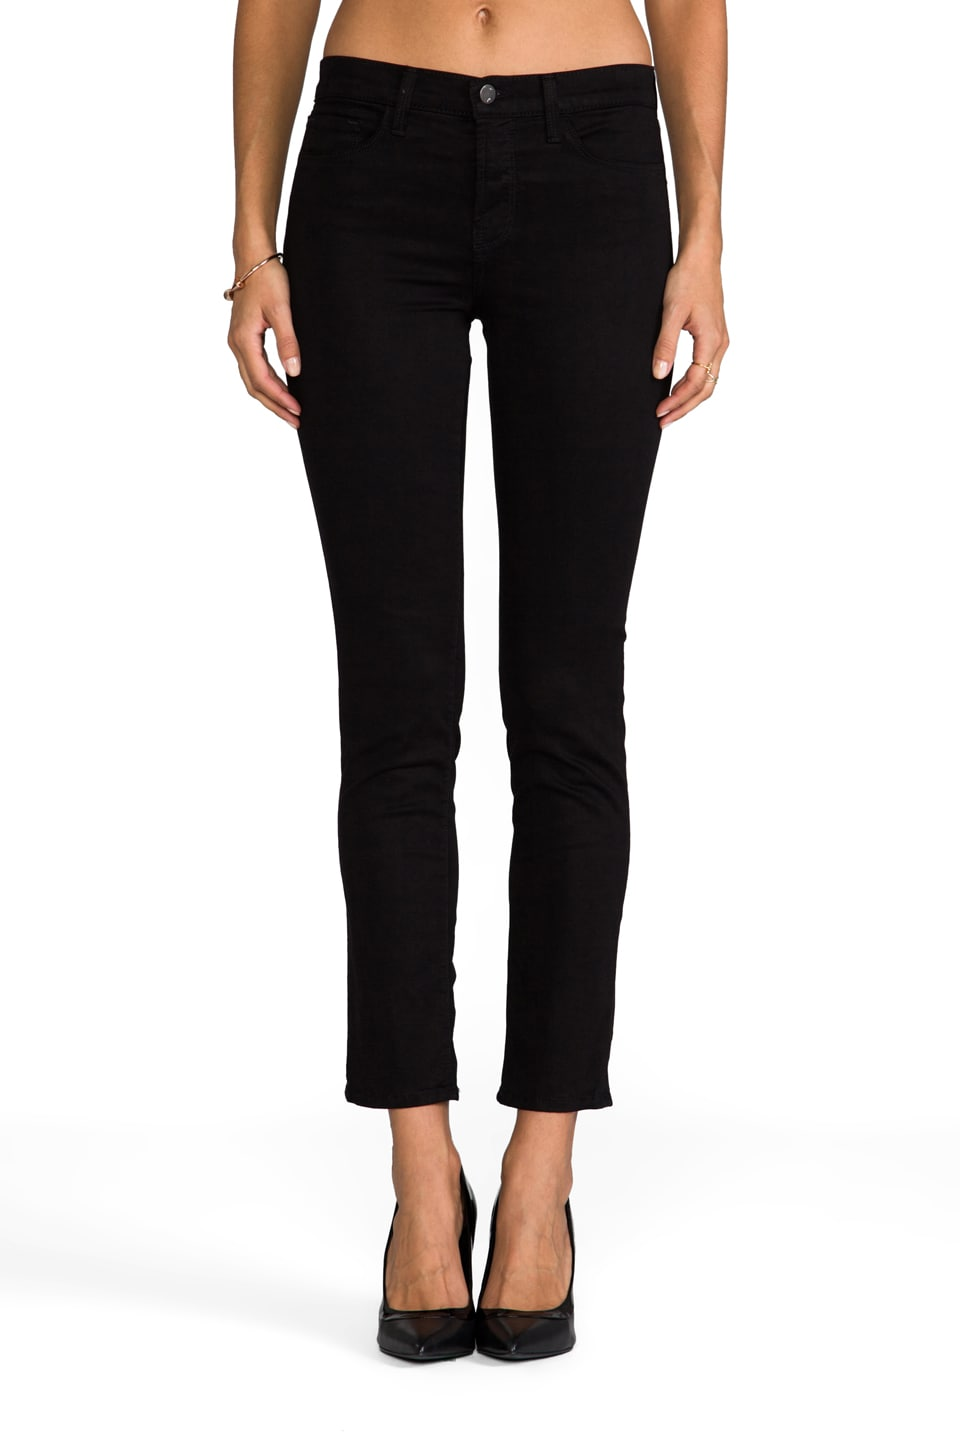 J Brand Petite Midrise Rail in Black